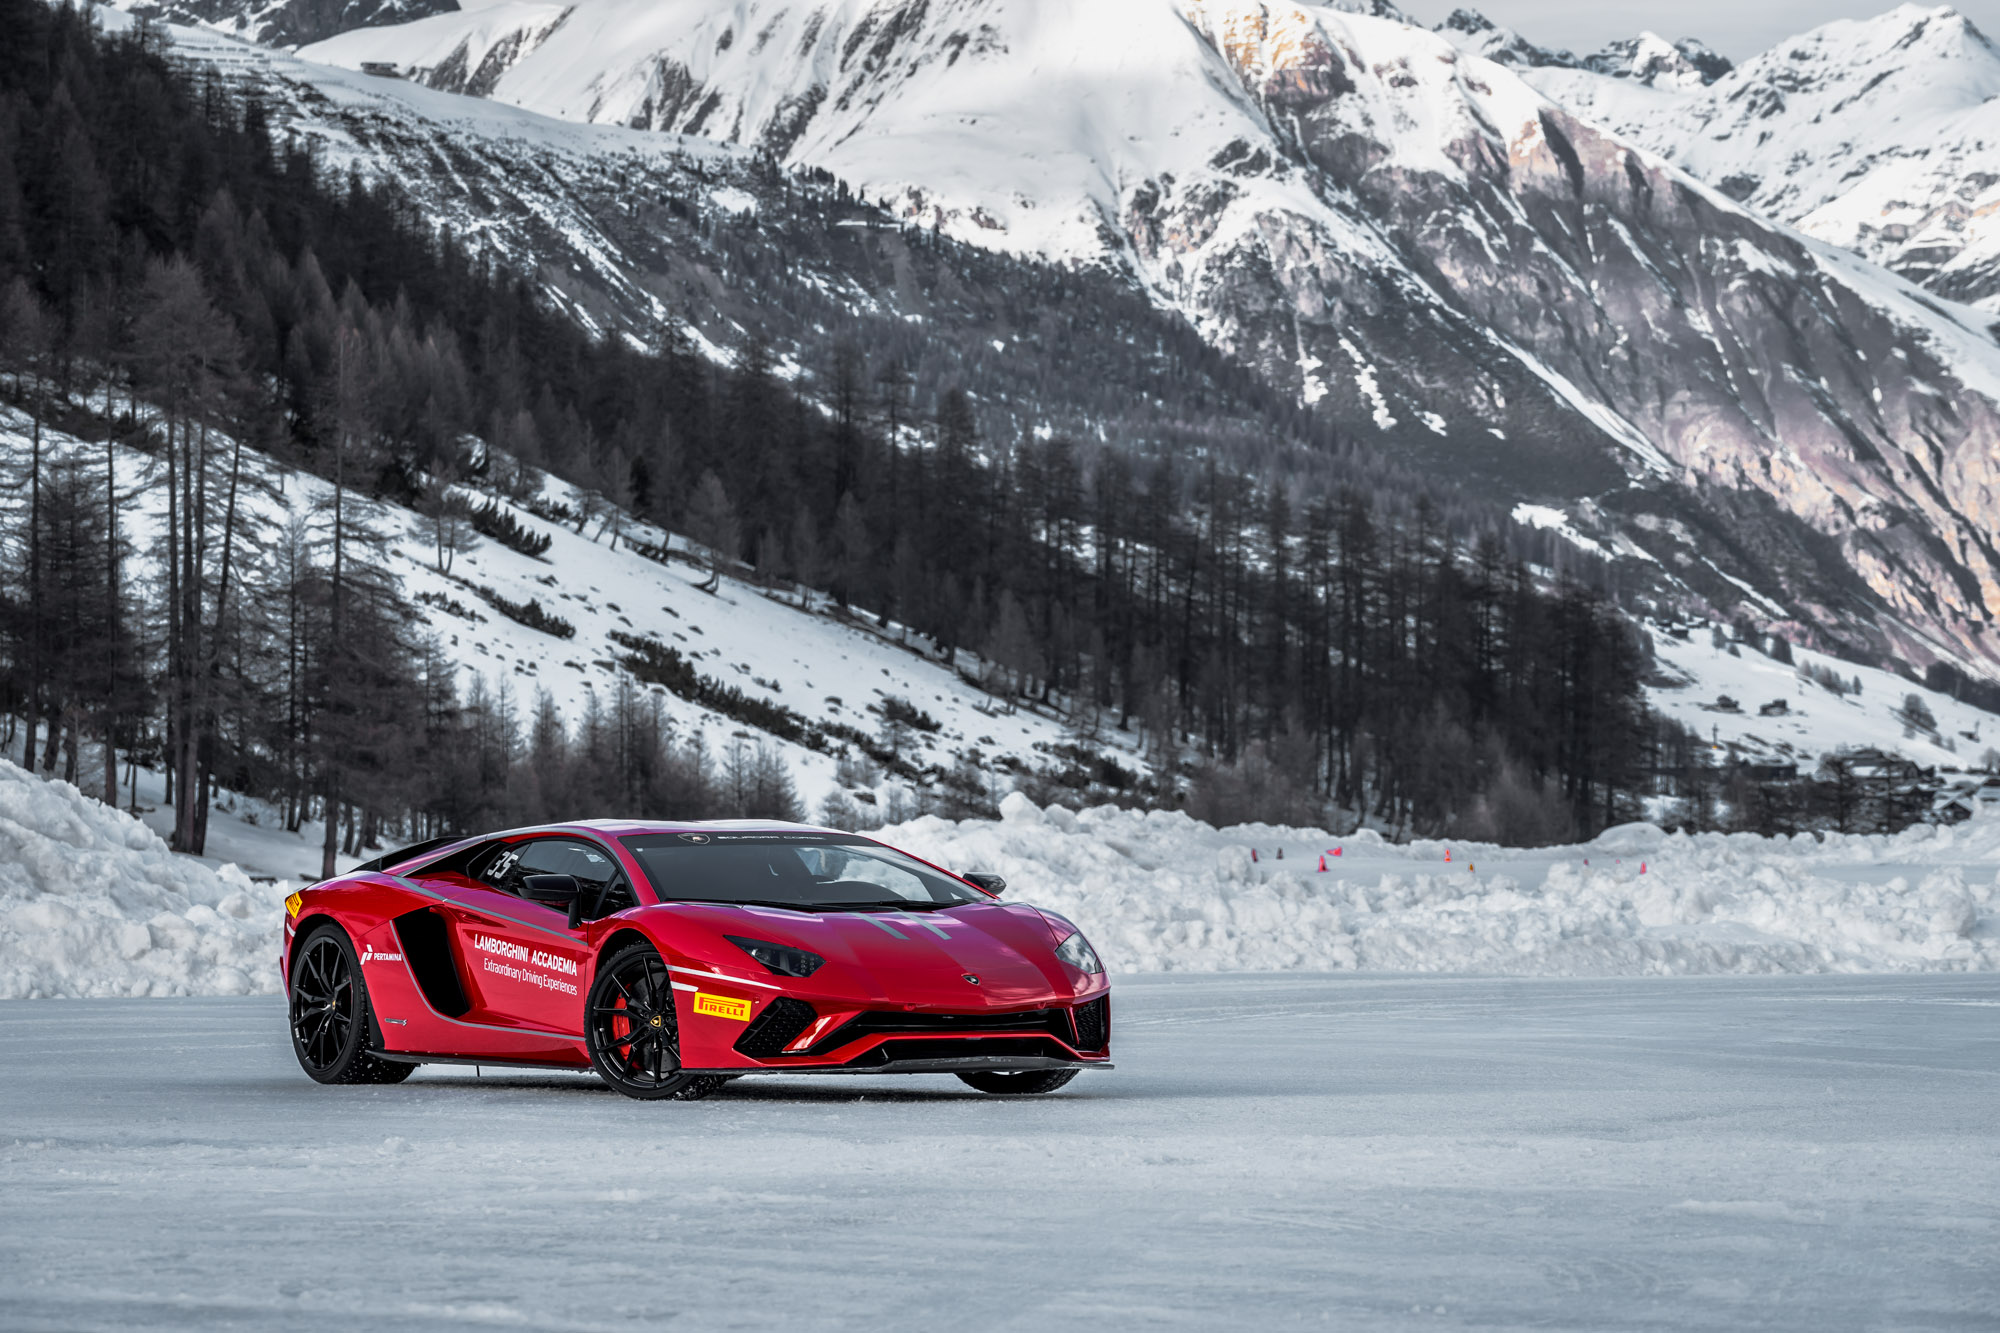 Lamborghini Winter Accademia featured